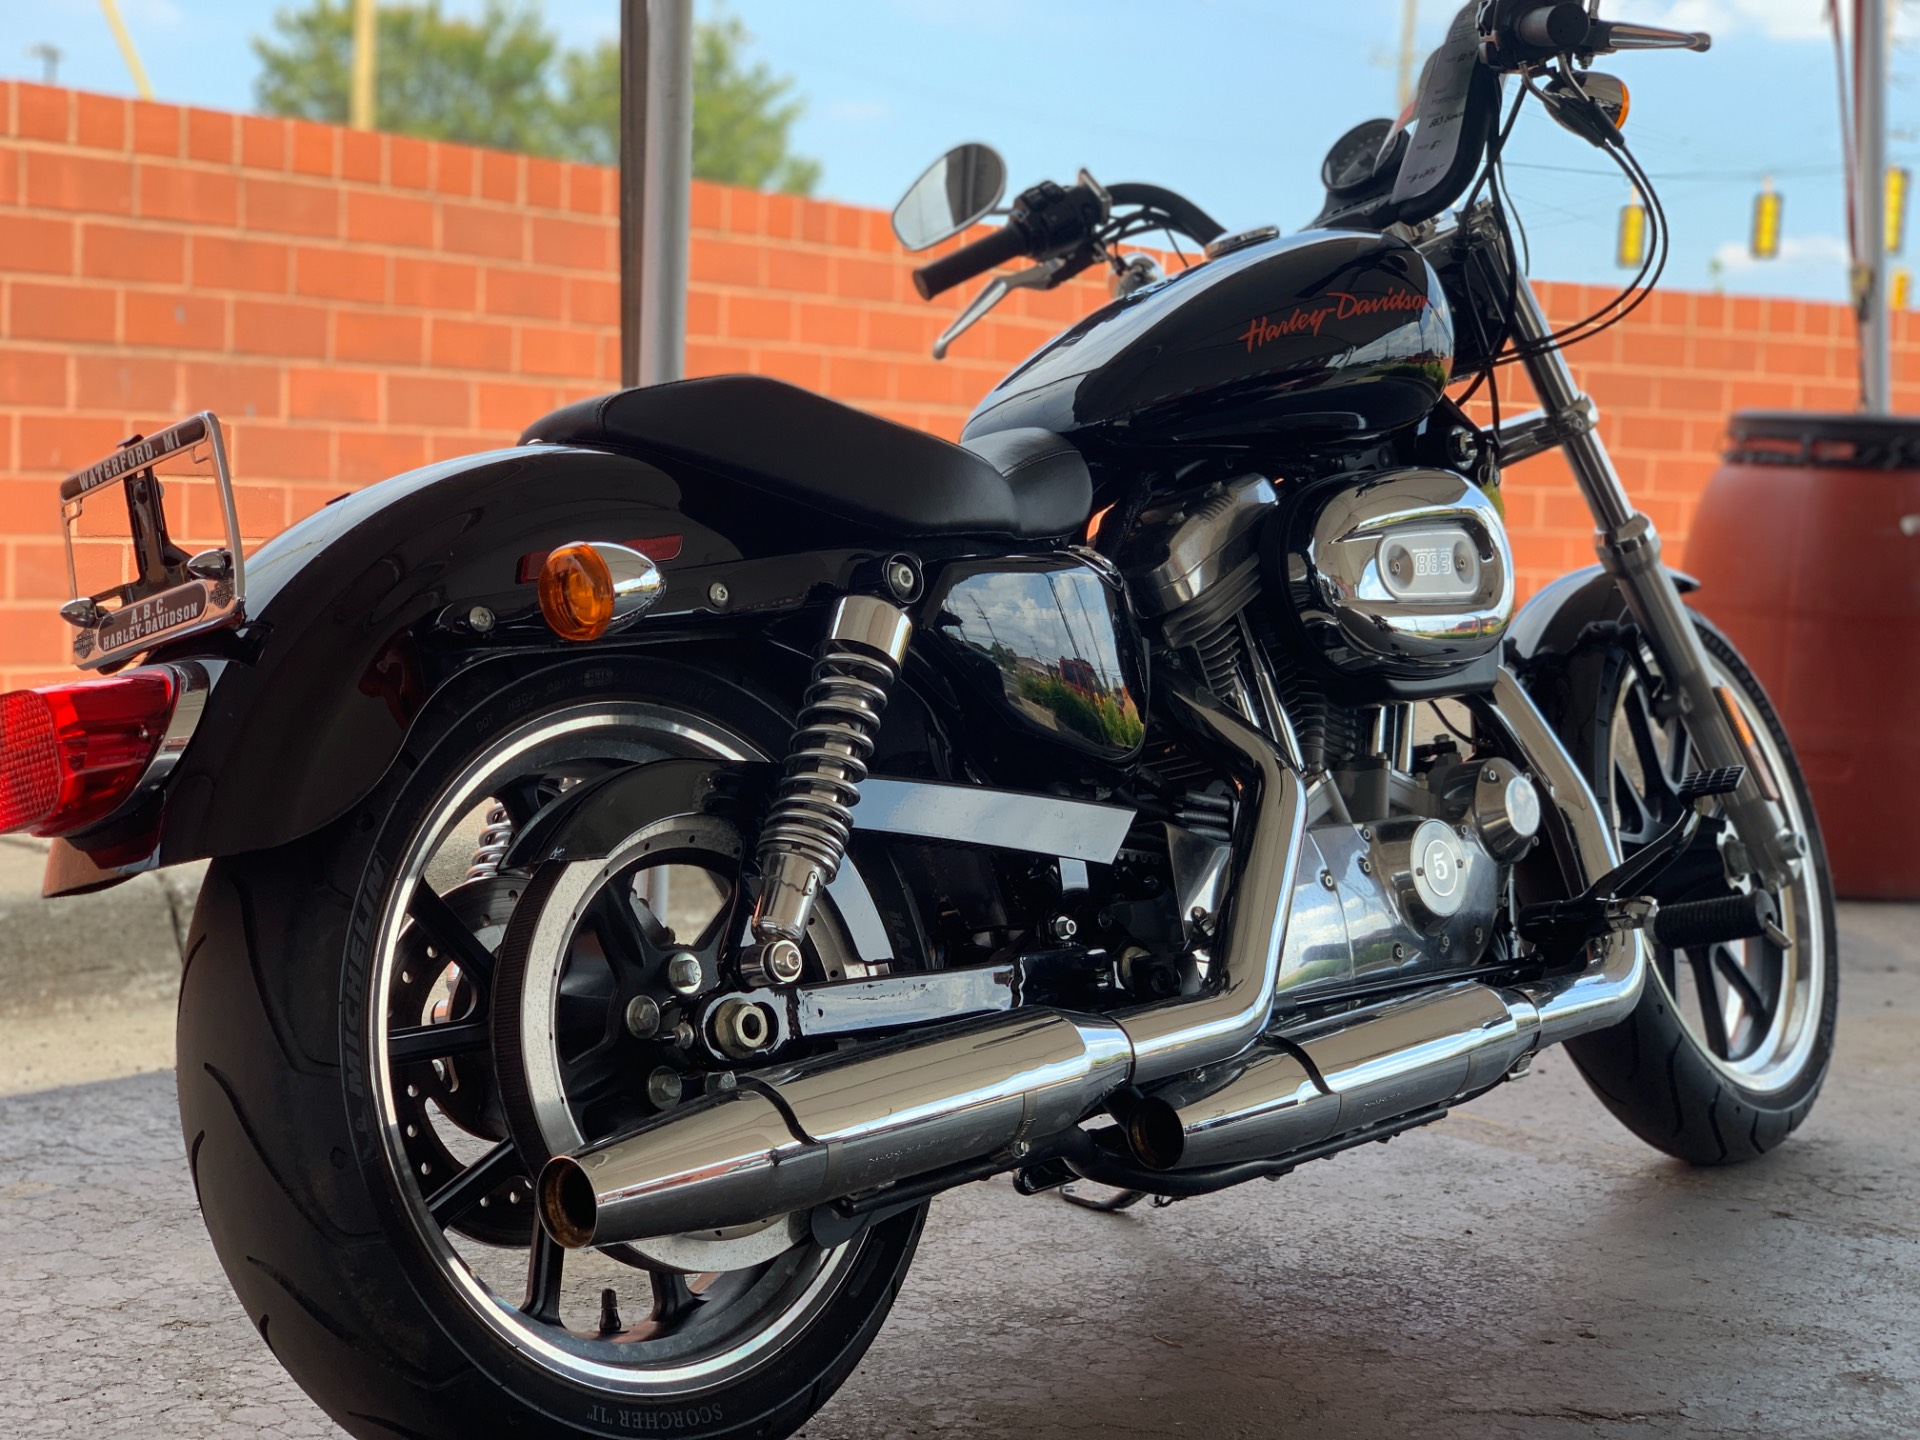 2014 Harley-Davidson XL883L in Waterford, Michigan - Photo 3